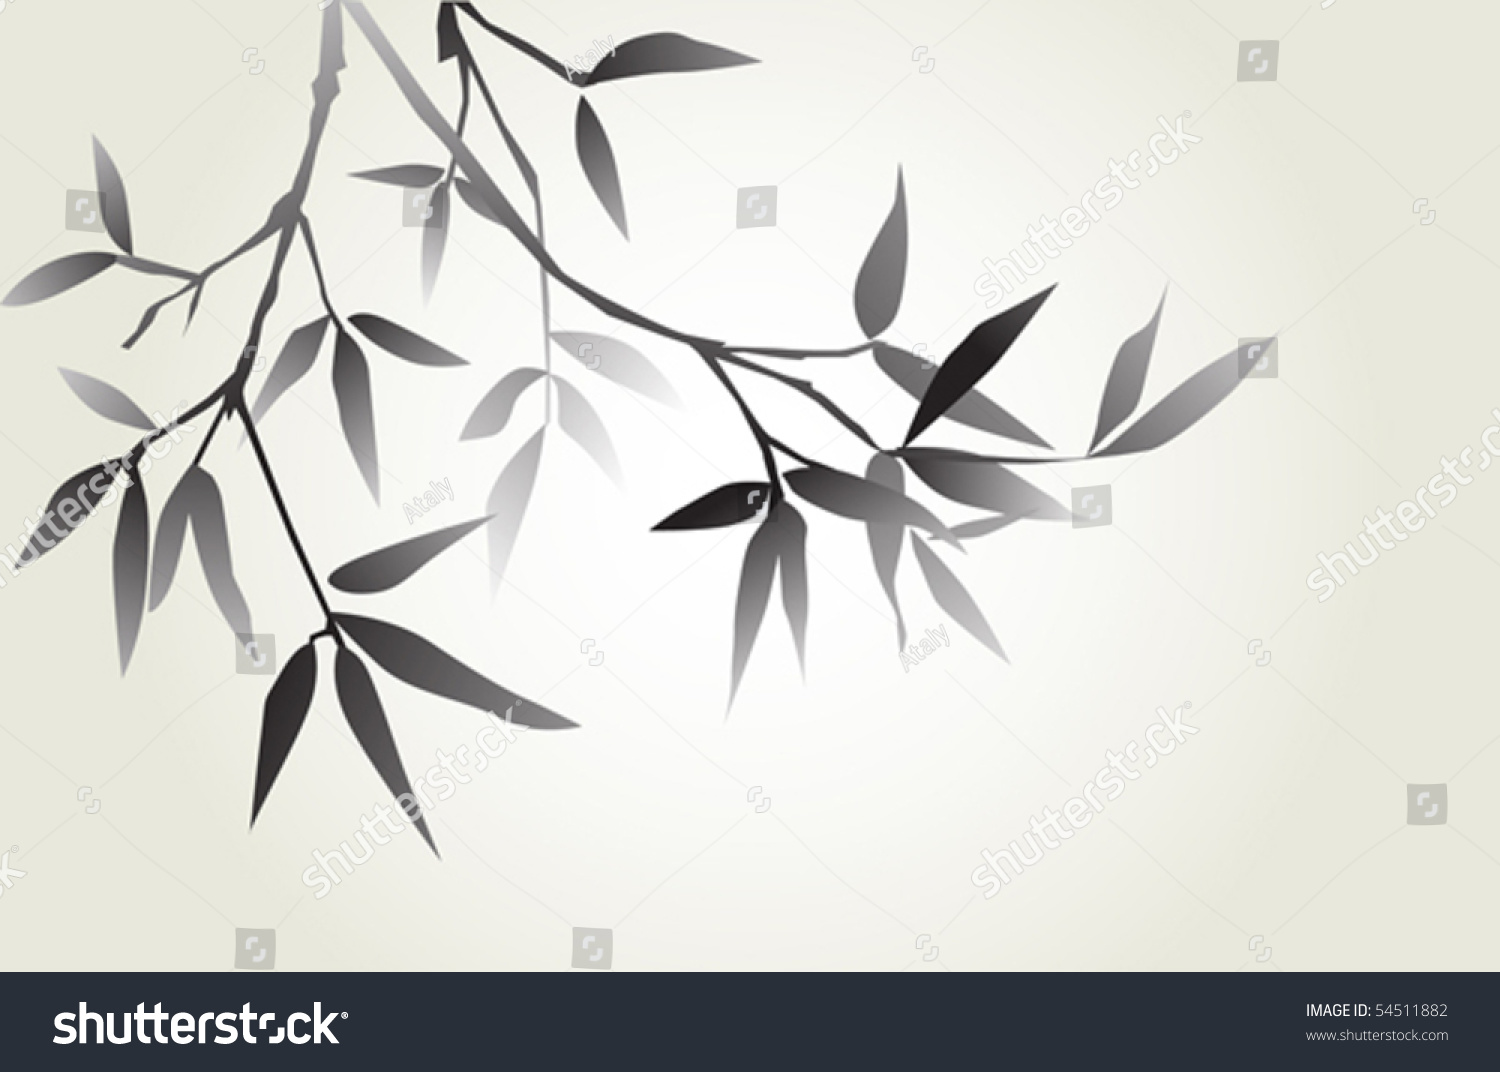 Japanese Calligraphy Bamboo Stock Vector Illustration